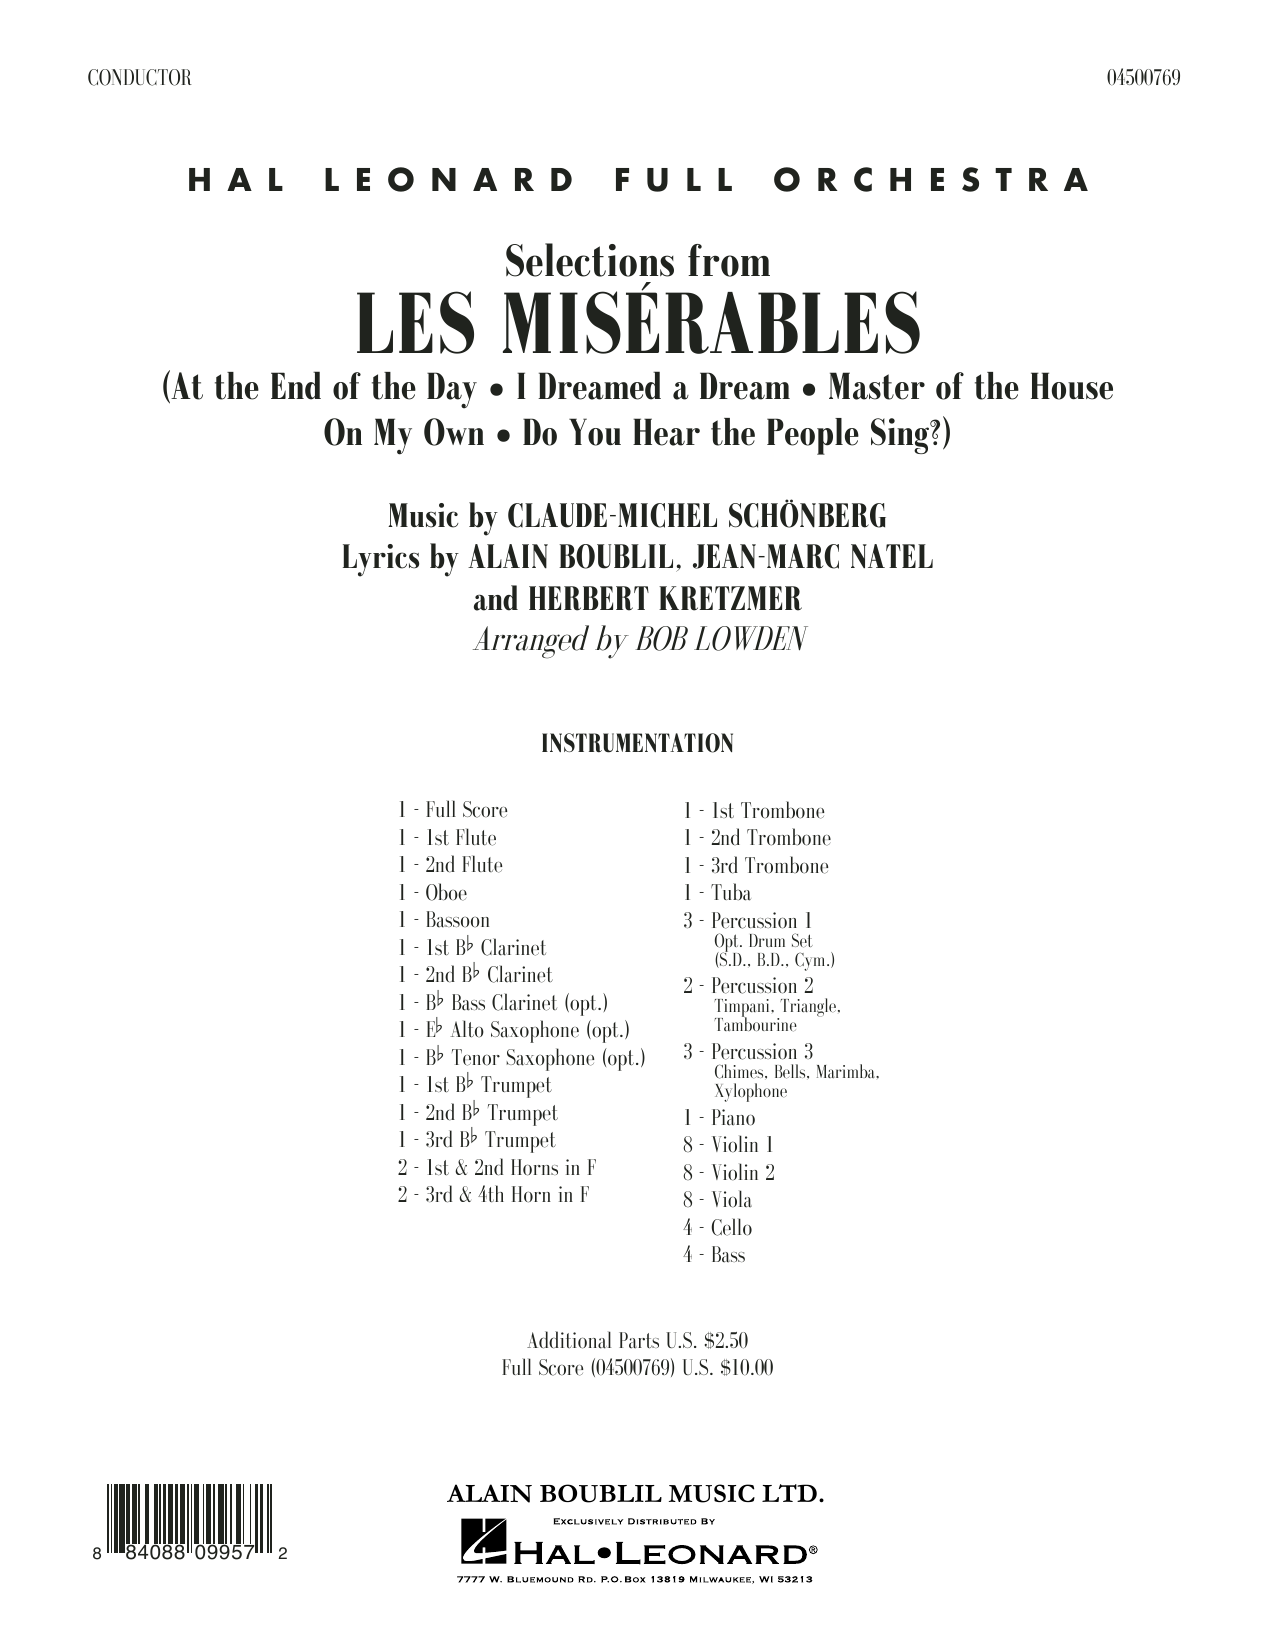 Claude-Michael Schonberg Selections from Les Miserables (arr. Bob Lowden) - Full Score sheet music notes and chords. Download Printable PDF.